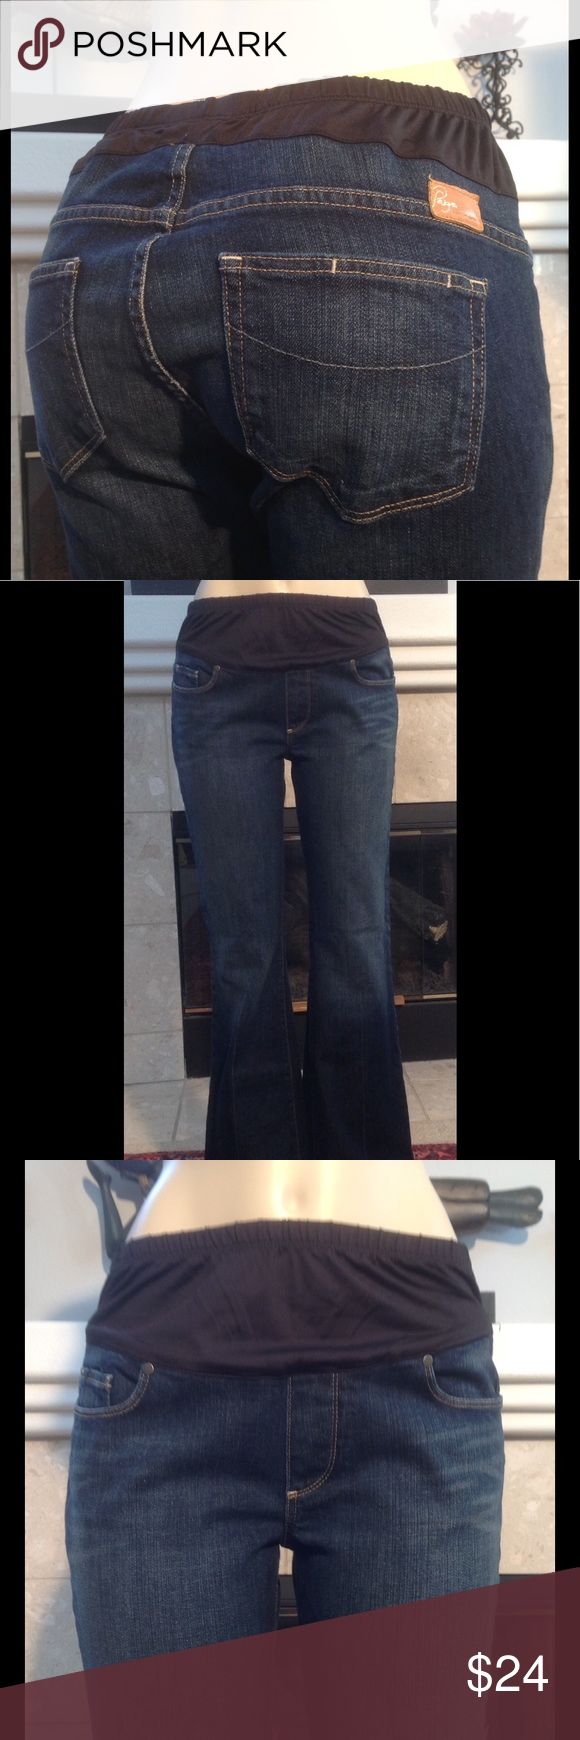 "Paige Premium Denim Maternity Jeans Size 32 (754) Paige premium designer maternity Bootcut jeans  Size 32 Approximate measurements are inseam 31, waist 17"" but can be stretched much more In great used condition with no tears holes or stains From a smoke free home (754) Paige Jeans Jeans Boot Cut"